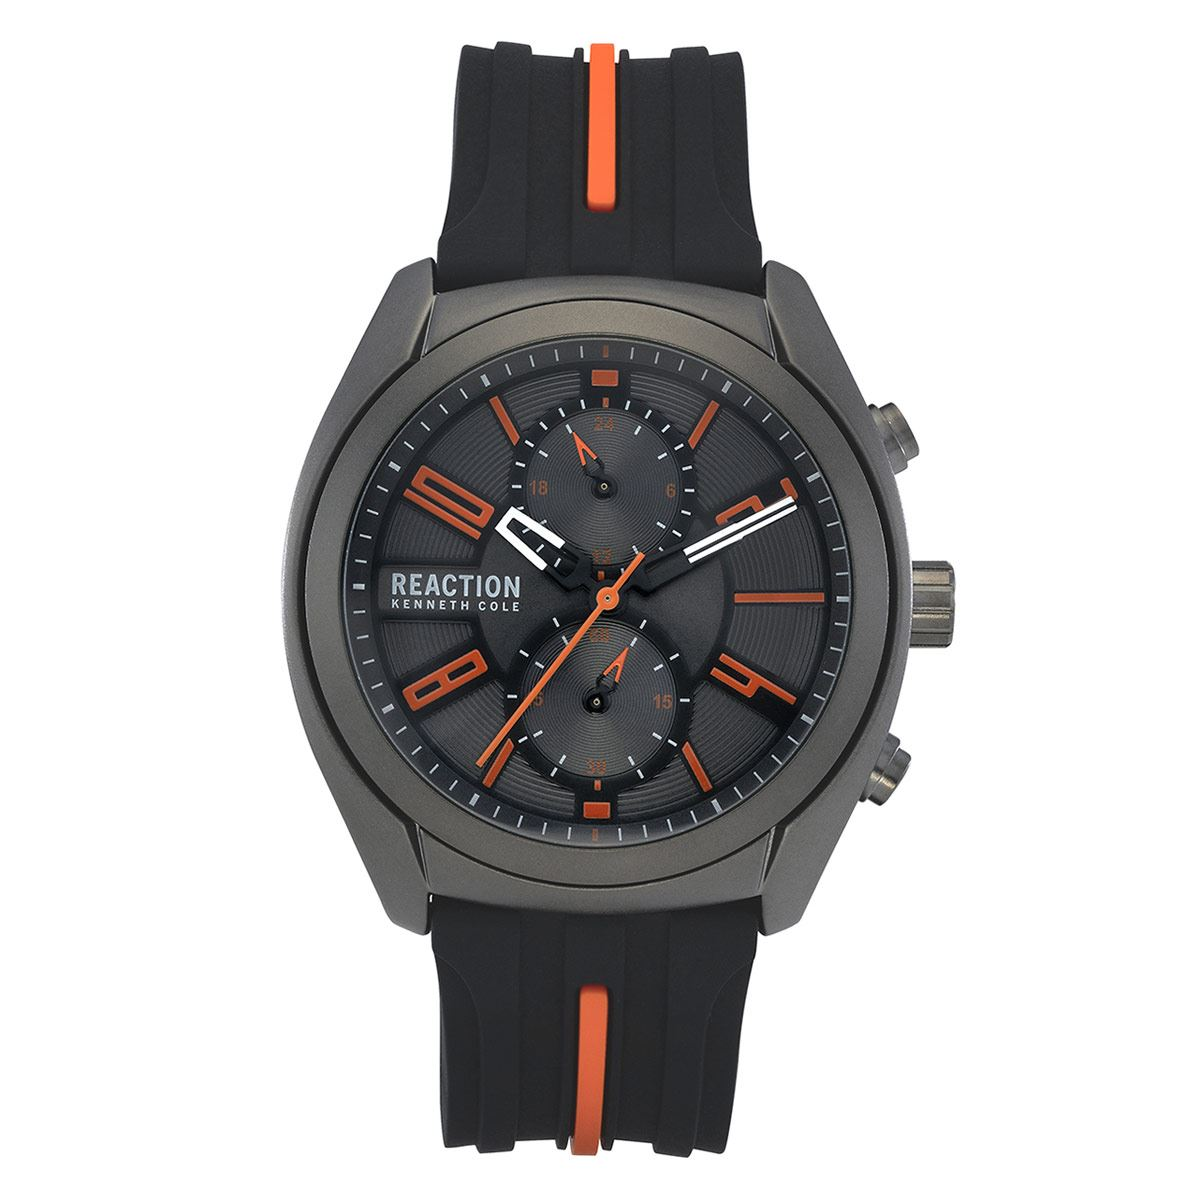 Reloj Kenneth Cole Reaction Caballero RK50900005